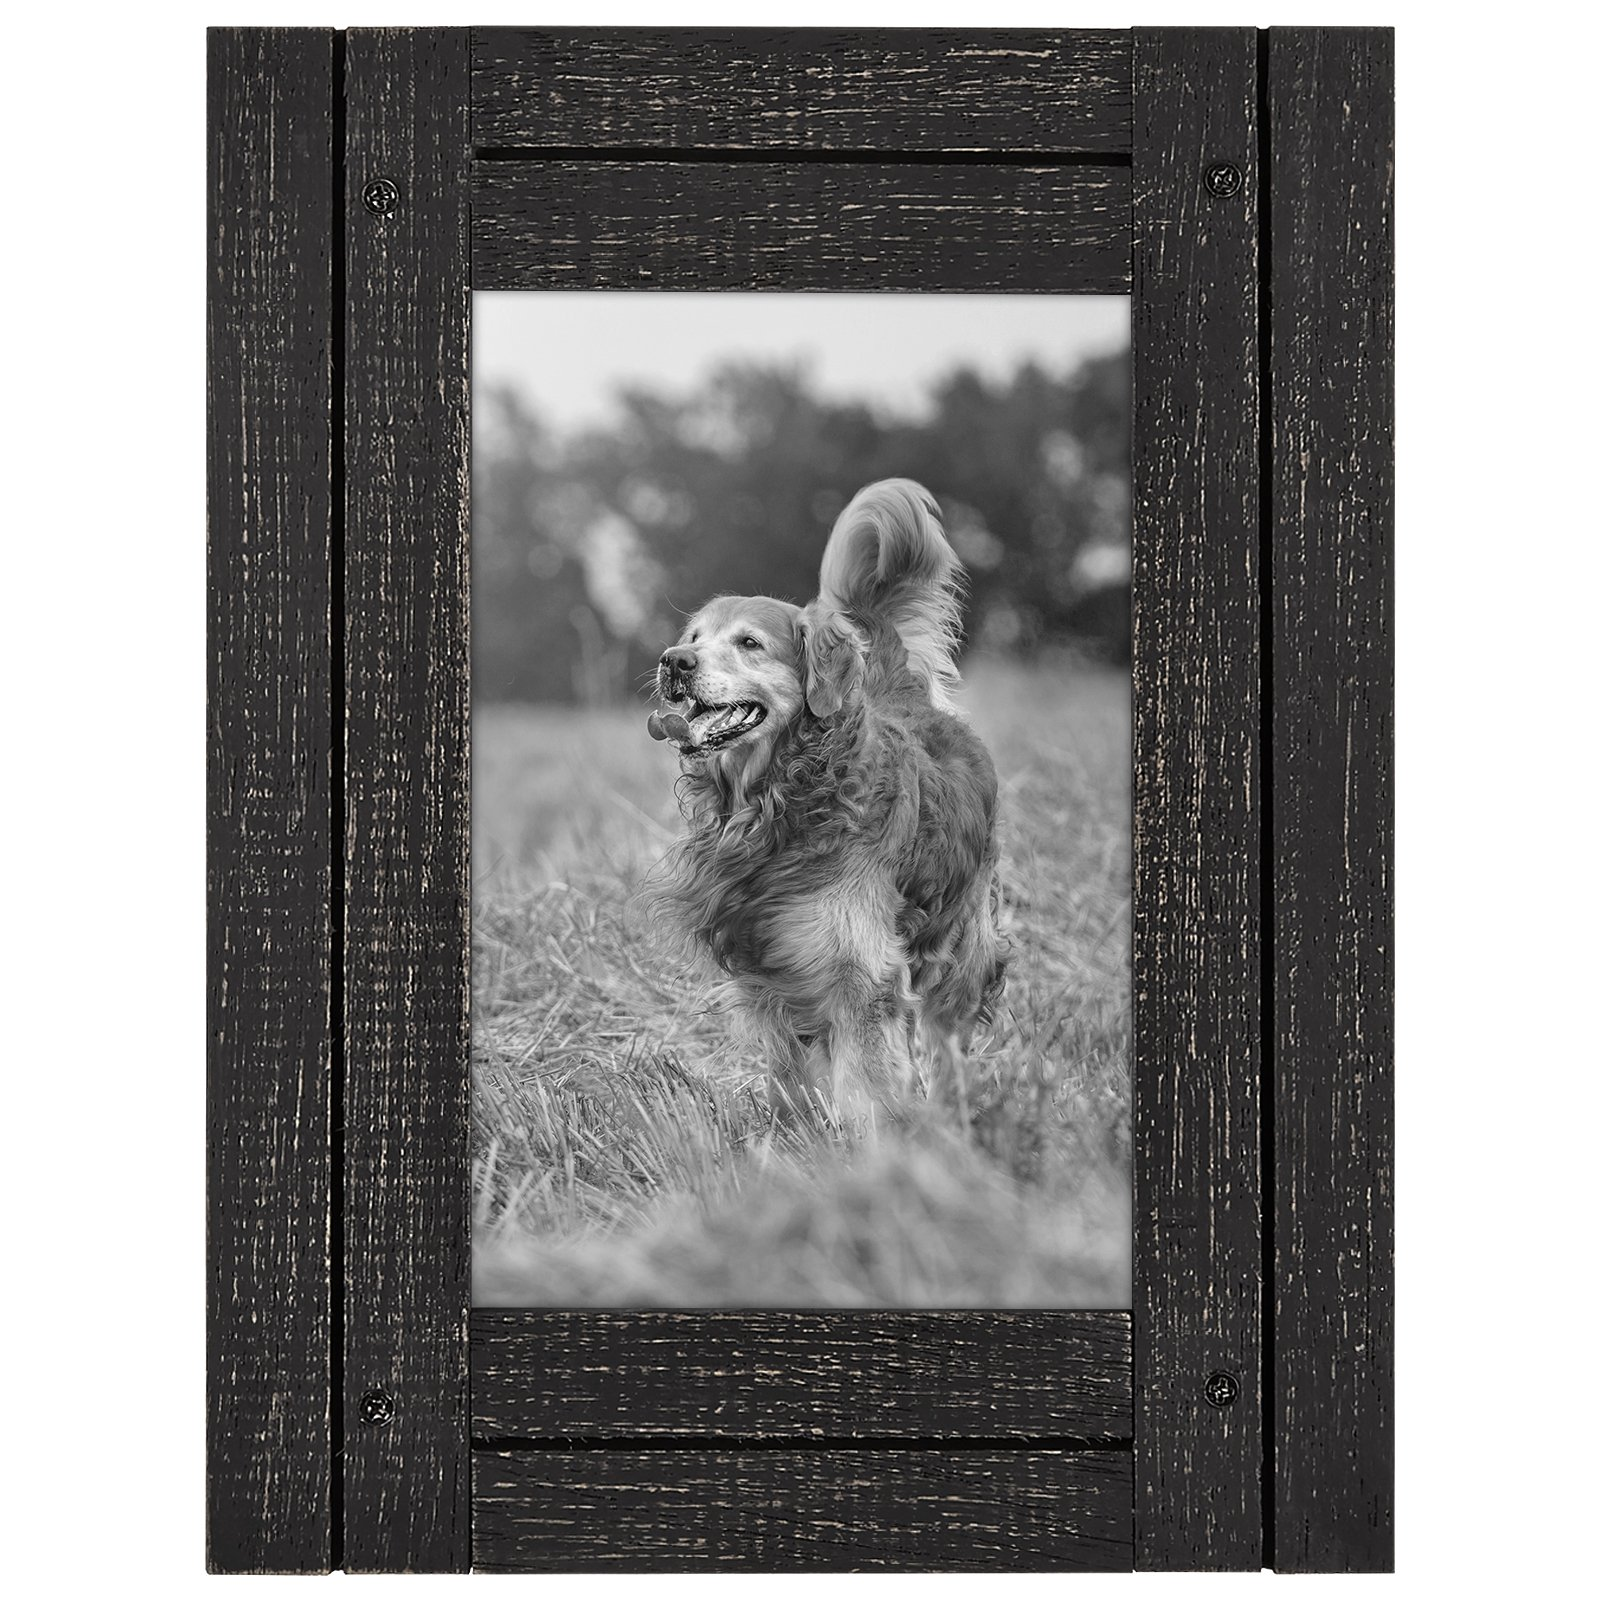 Americanflat 4x6 Charcoal Black Distressed Wood Frame - Made to Display 4x6 Photo - Ready to Hang - Ready to Stand - Built-in Easel